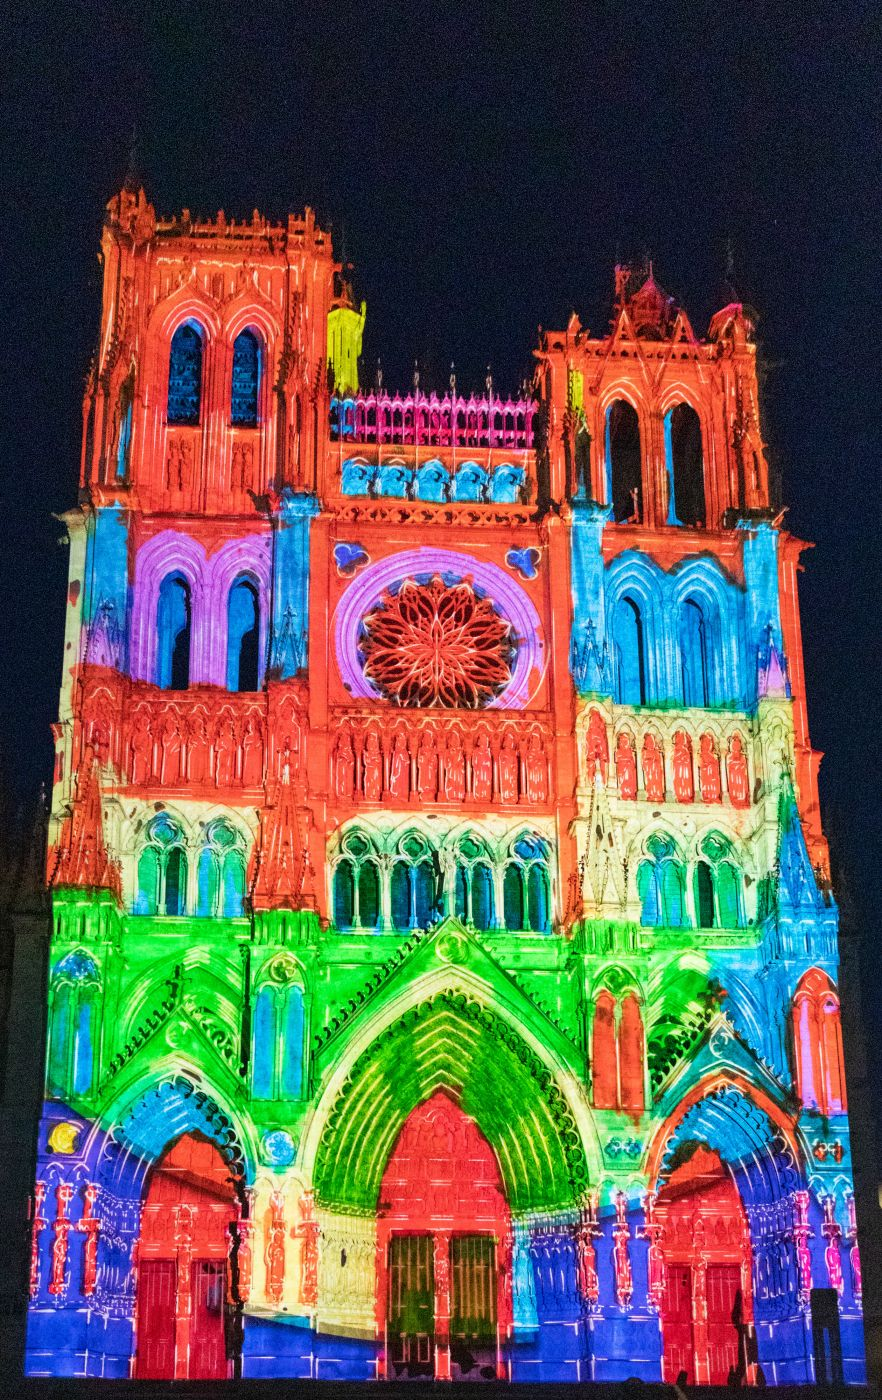 Kathedrale Notre Dame in Amiens, France